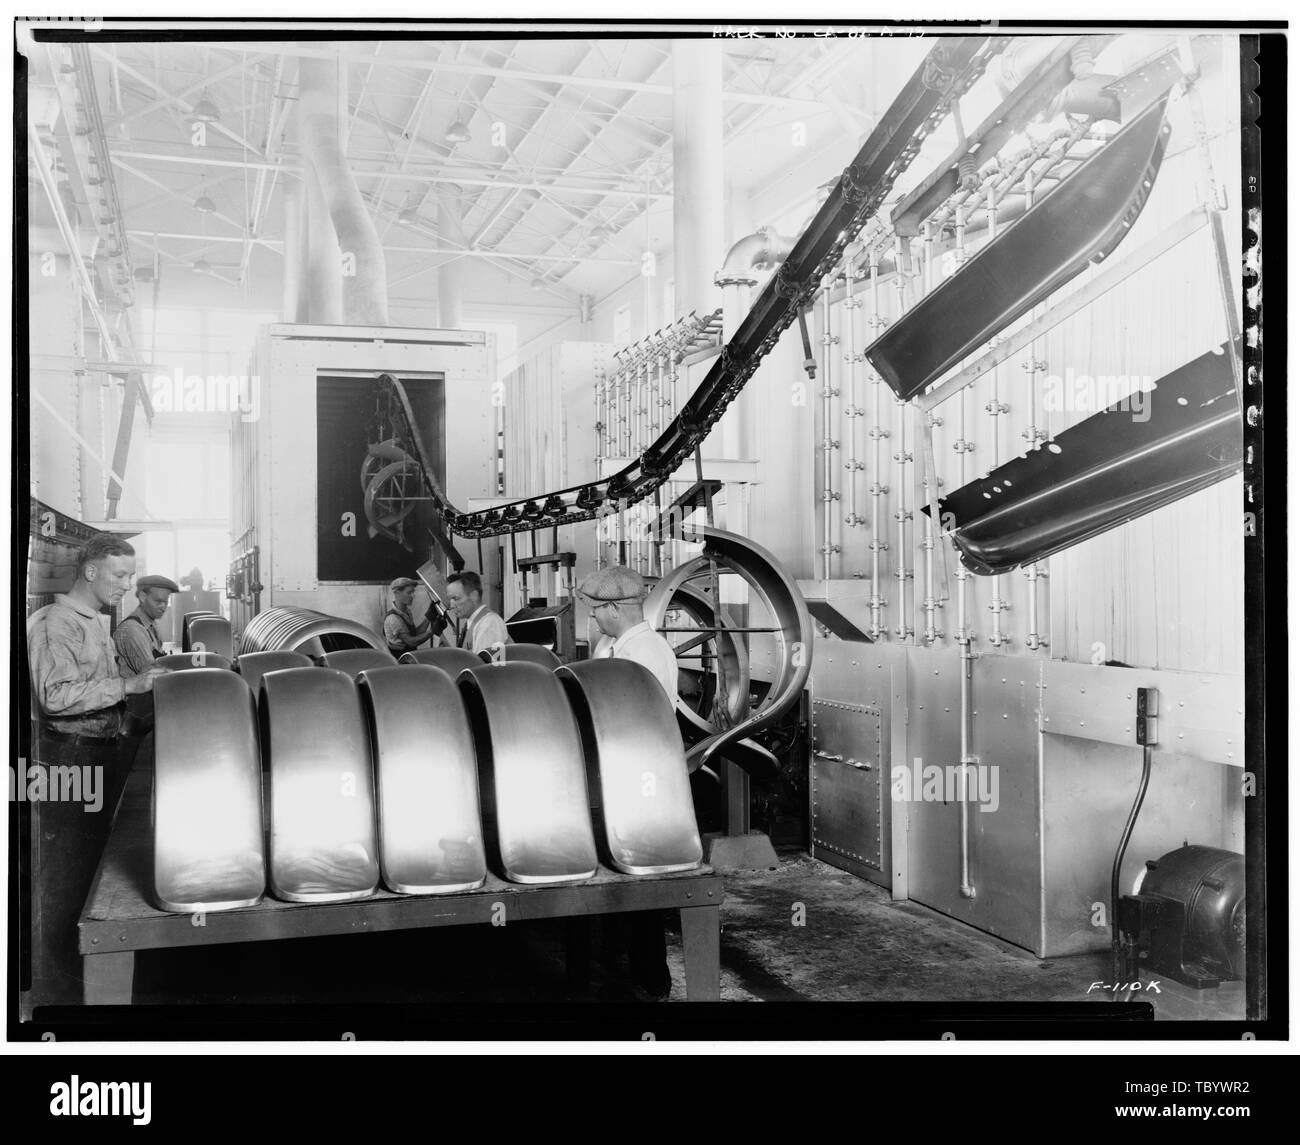 Neg. Nr. F110 K, Apr 24, 1931 INTERIORPRESSED STAHLBAU, NORDOSTEN NACH NORDEN, MIT KOTFLÜGEL LACKIEREN Ford Motor Company Long Beach Montagewerk, Assembly Building, 700 Henry Ford Avenue, Long Beach, Los Angeles County, CA Stockbild